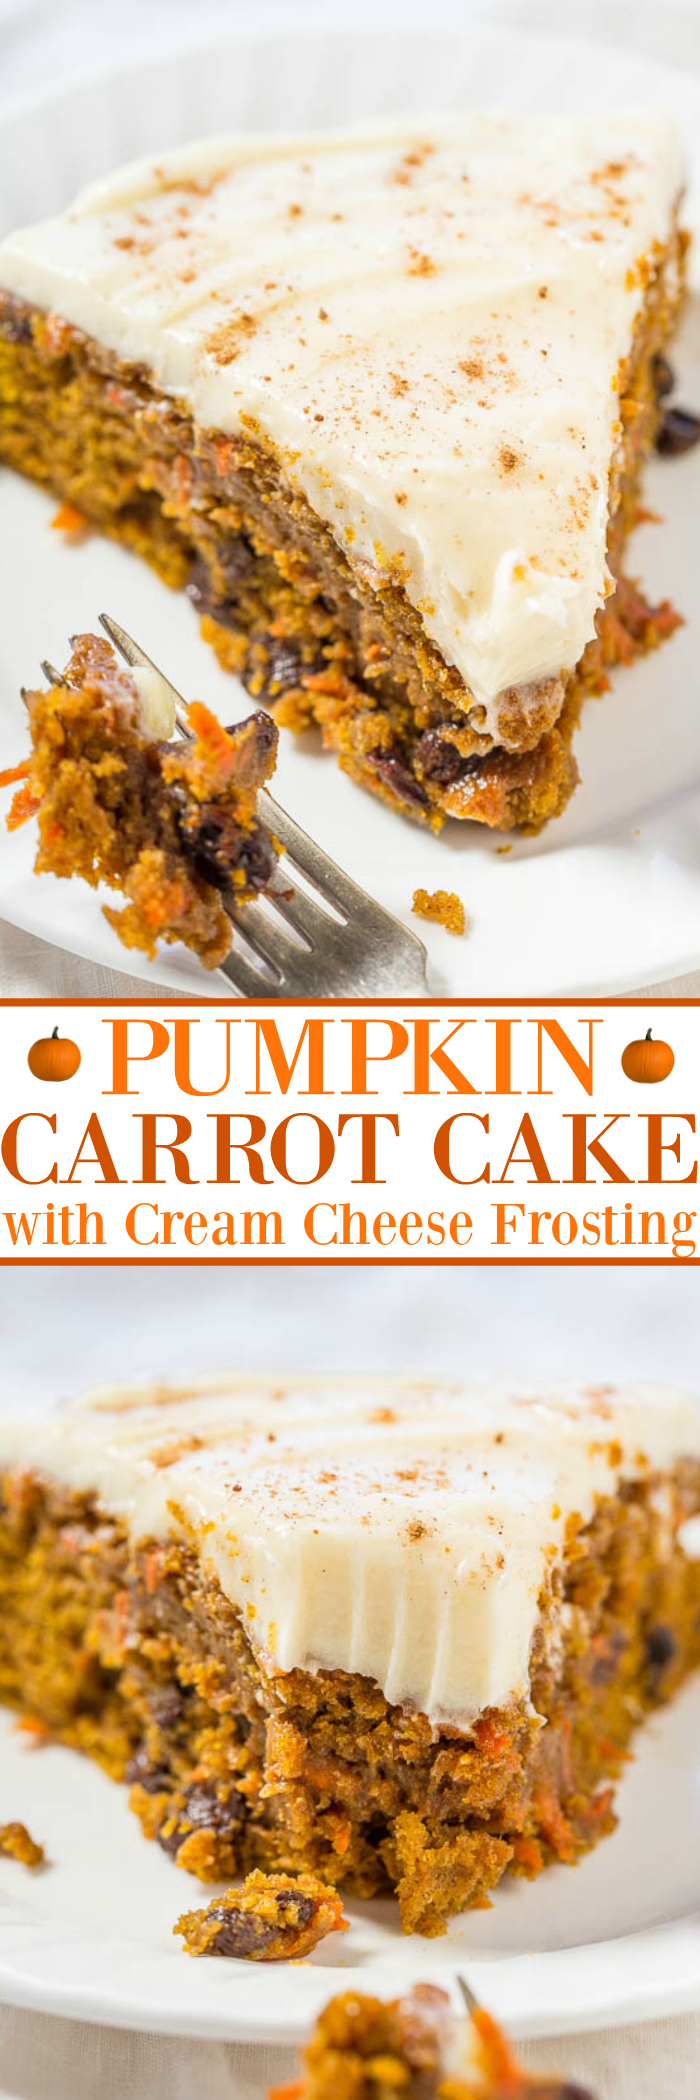 The Best Pumpkin Carrot Cake with Cream Cheese Frosting - A marriage of pumpkin cake and carrot cake into one soft, moist, tender, and amazing cake!! The tangy cream cheese frosting is truly the icing on this easy cake!!